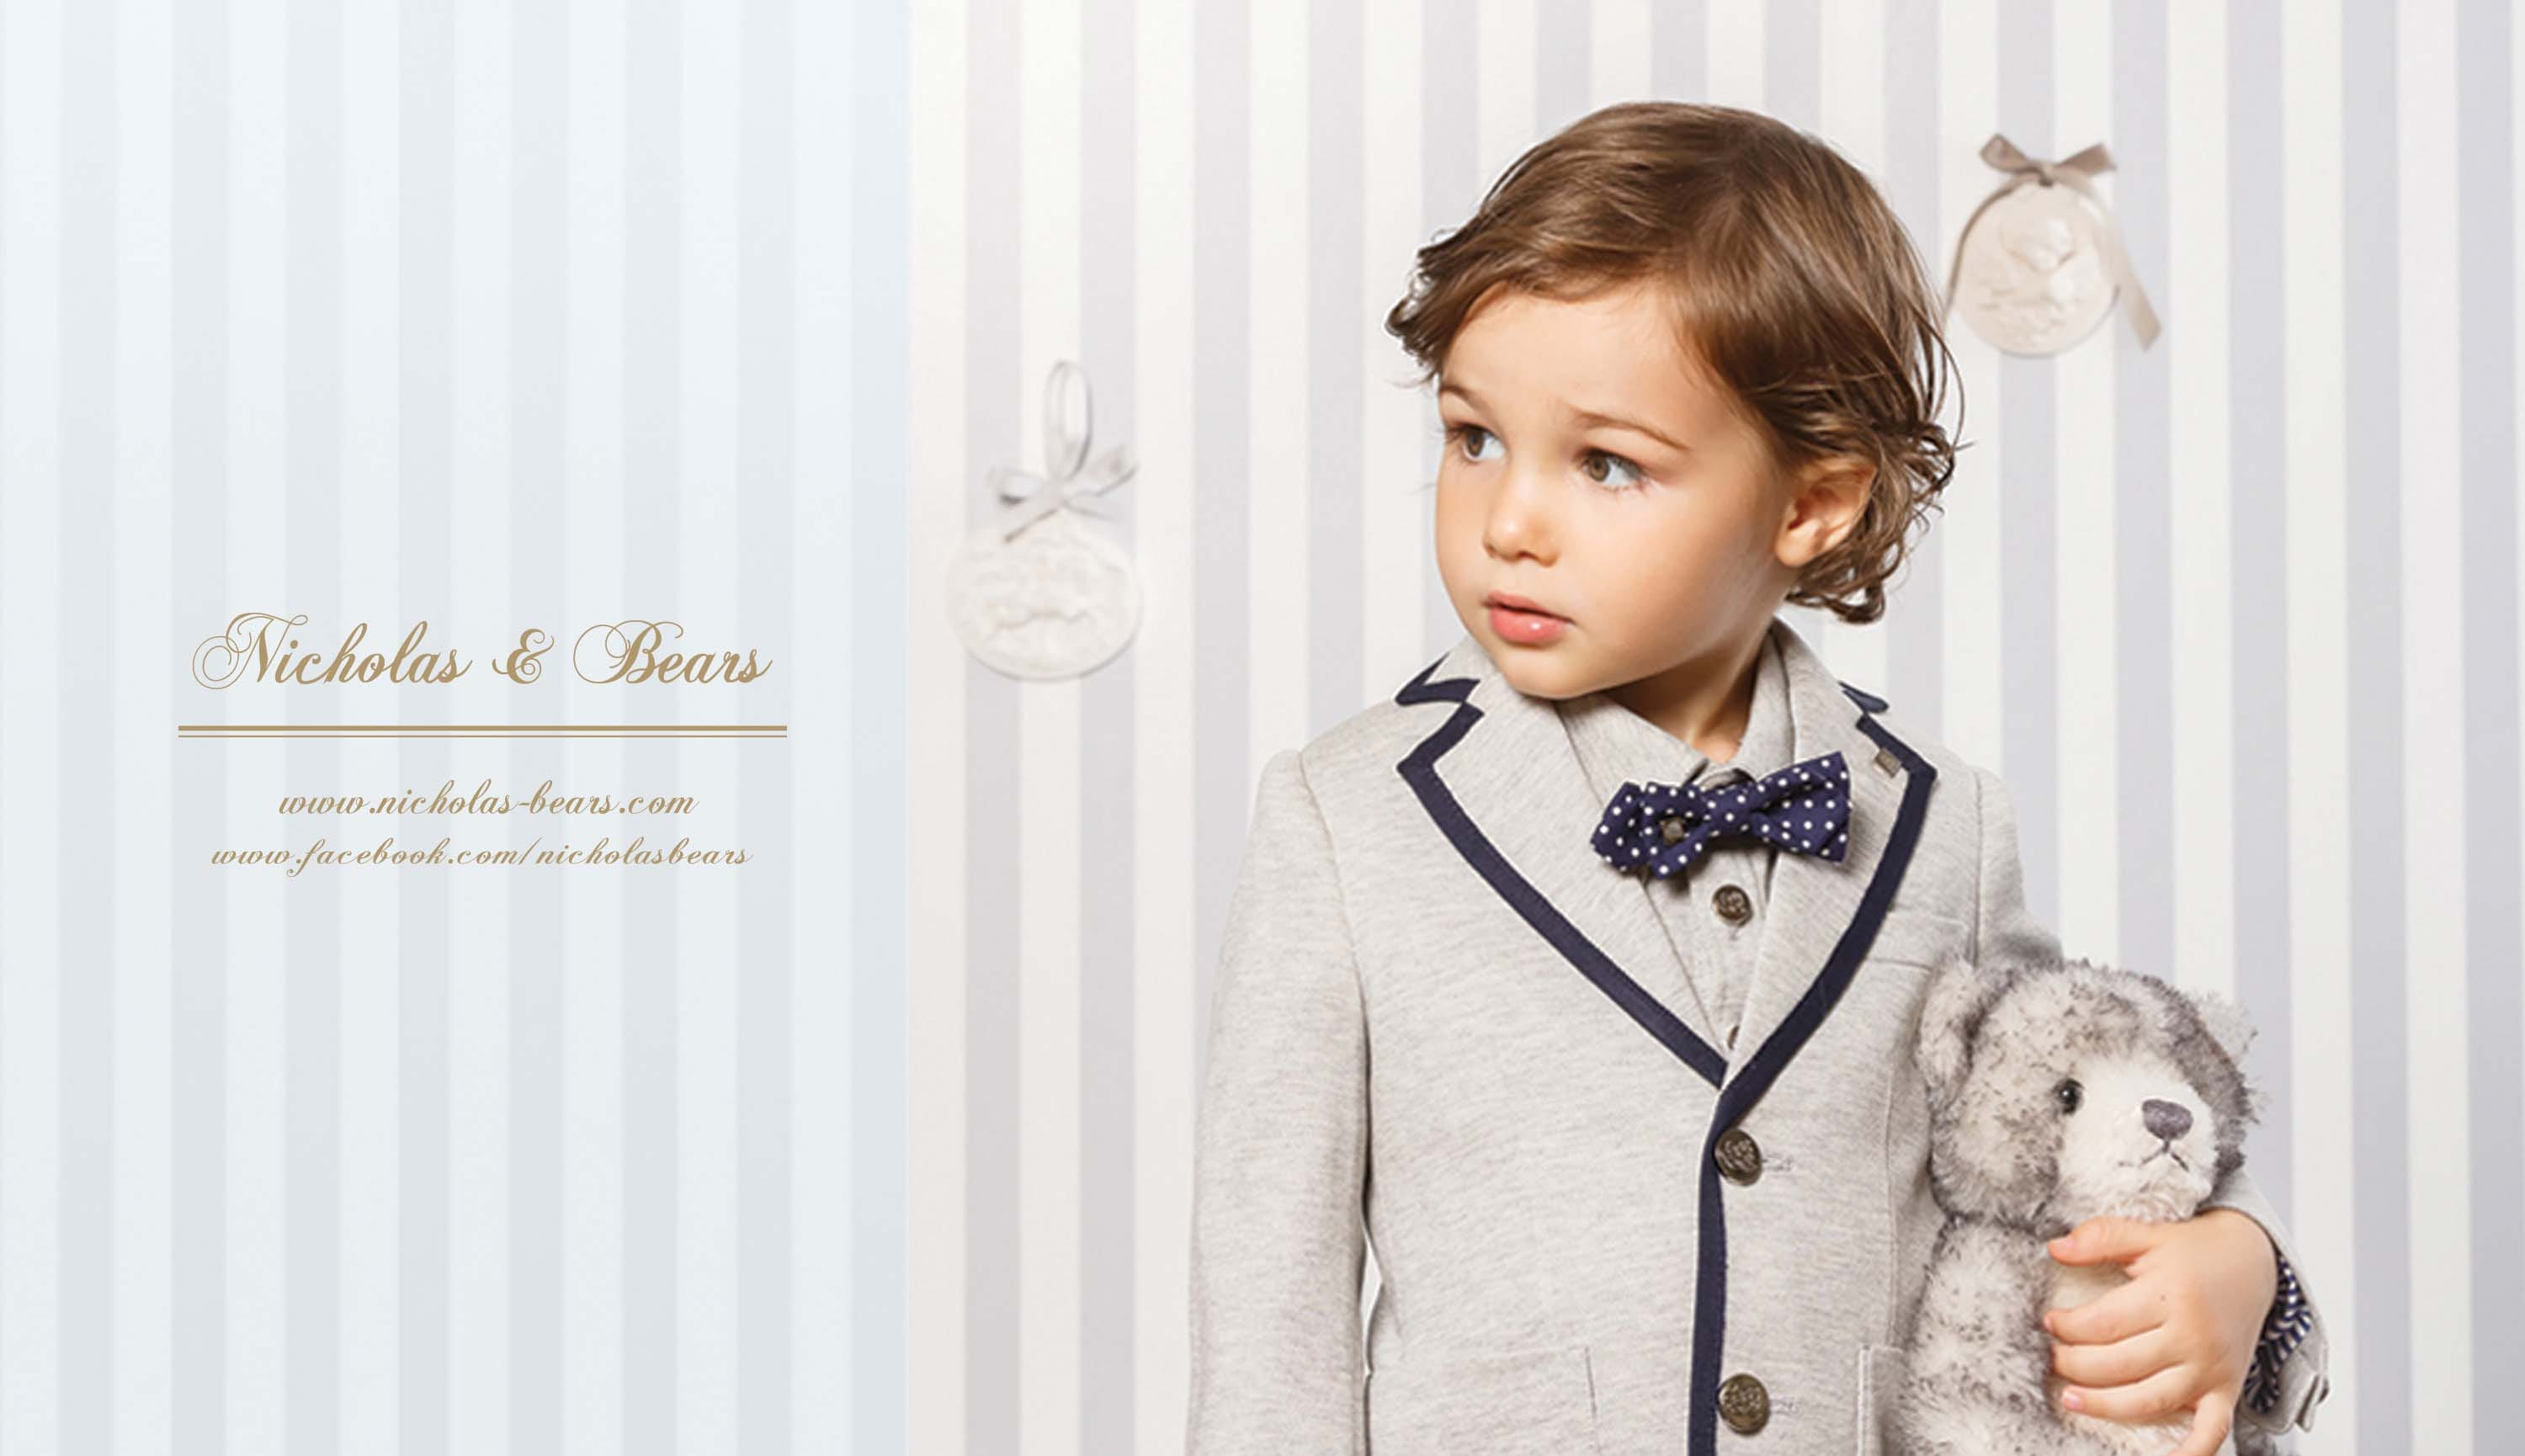 nicholas & bears Spring Summer 2015 Collection